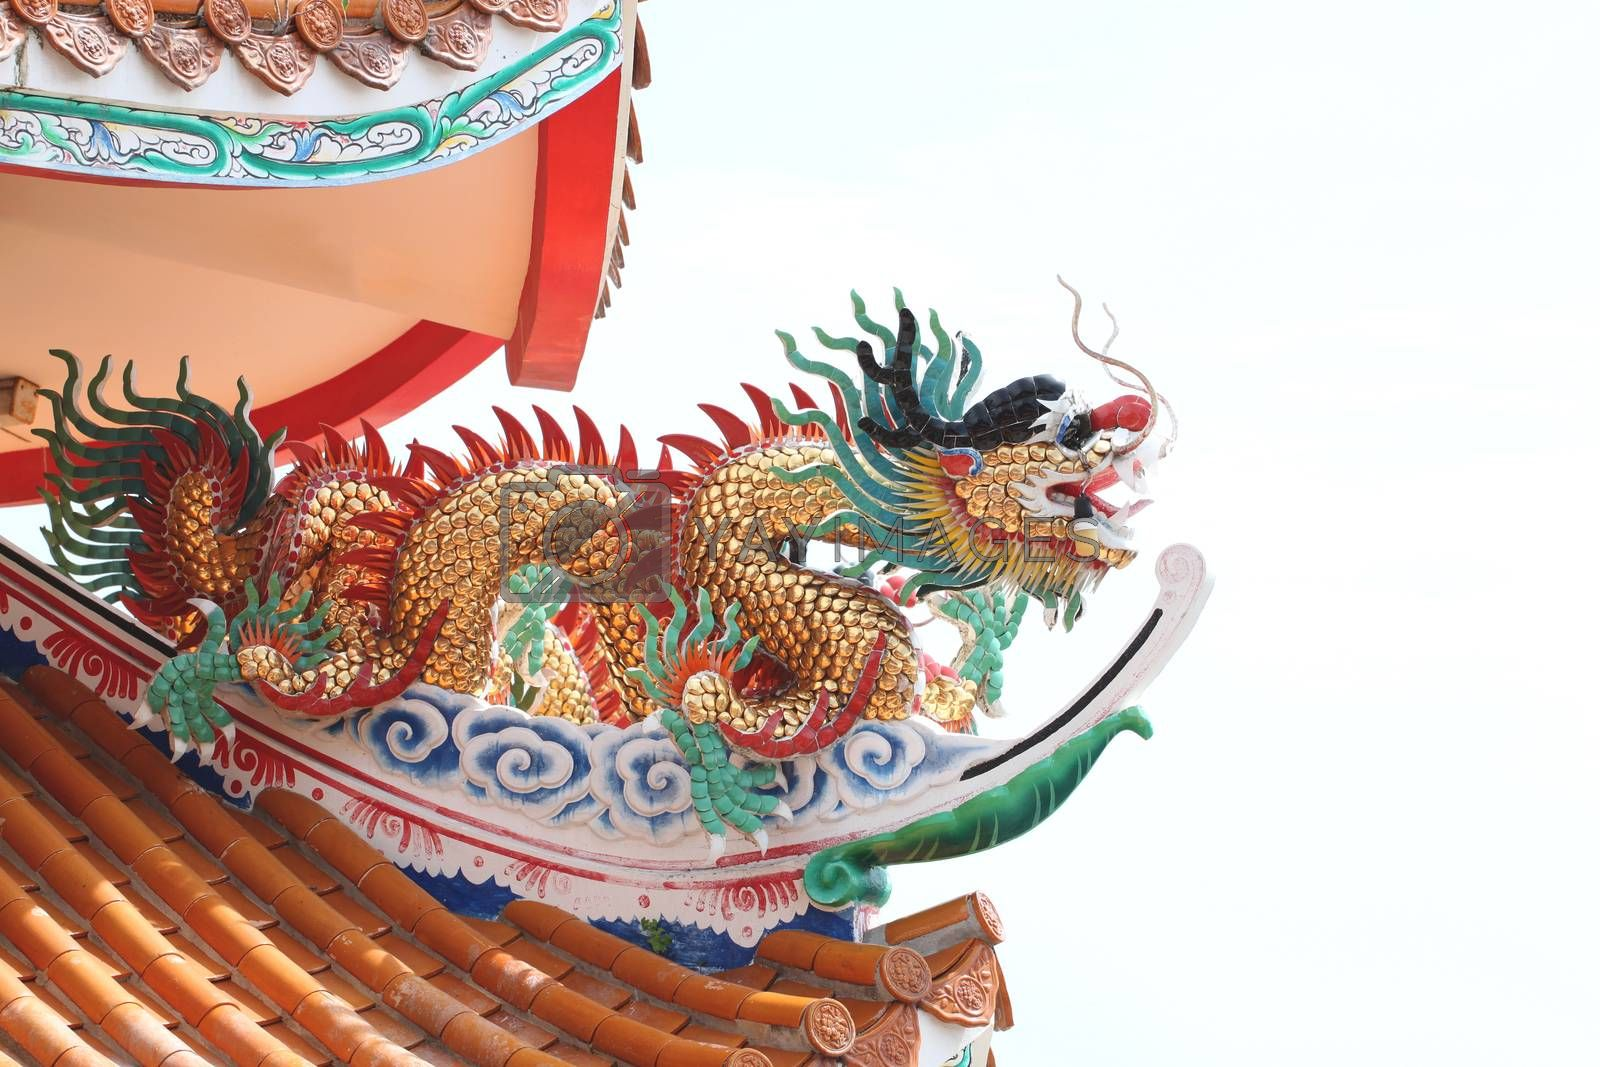 Dragon sculpture in Chinese temple,Thailand.